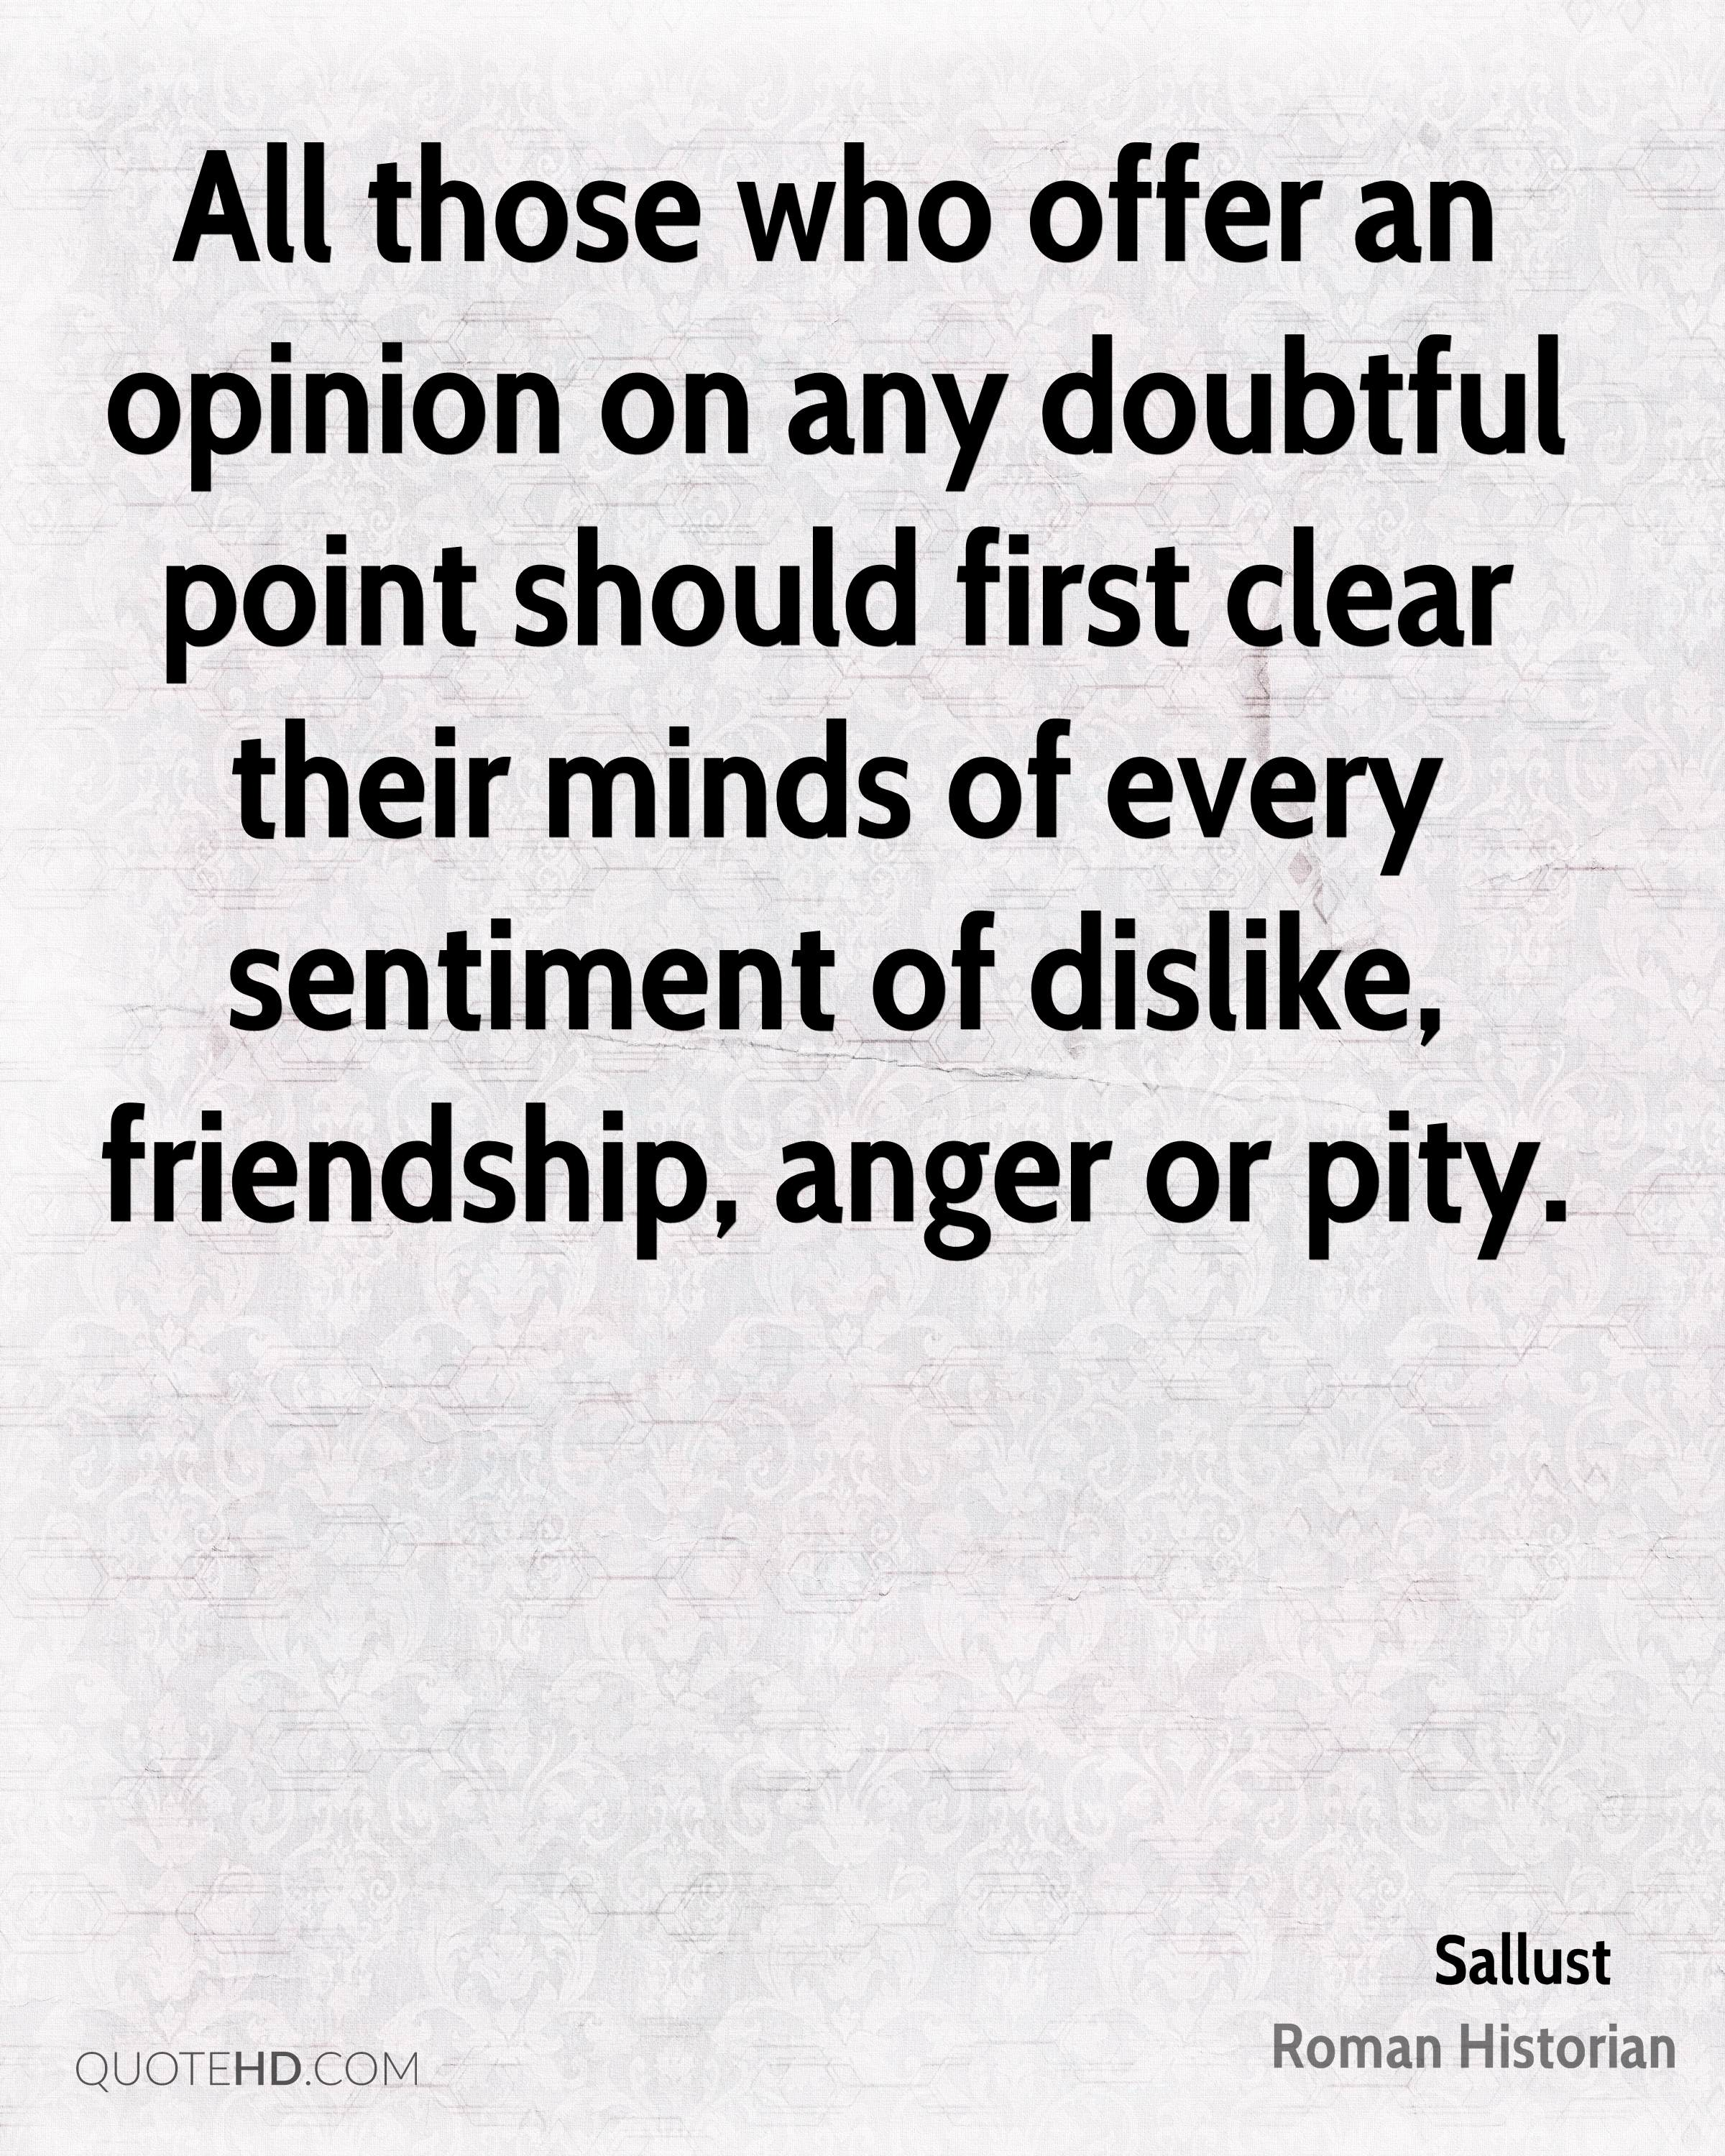 All those who offer an opinion on any doubtful point should first clear their minds of every sentiment of dislike, friendship, anger or pity.